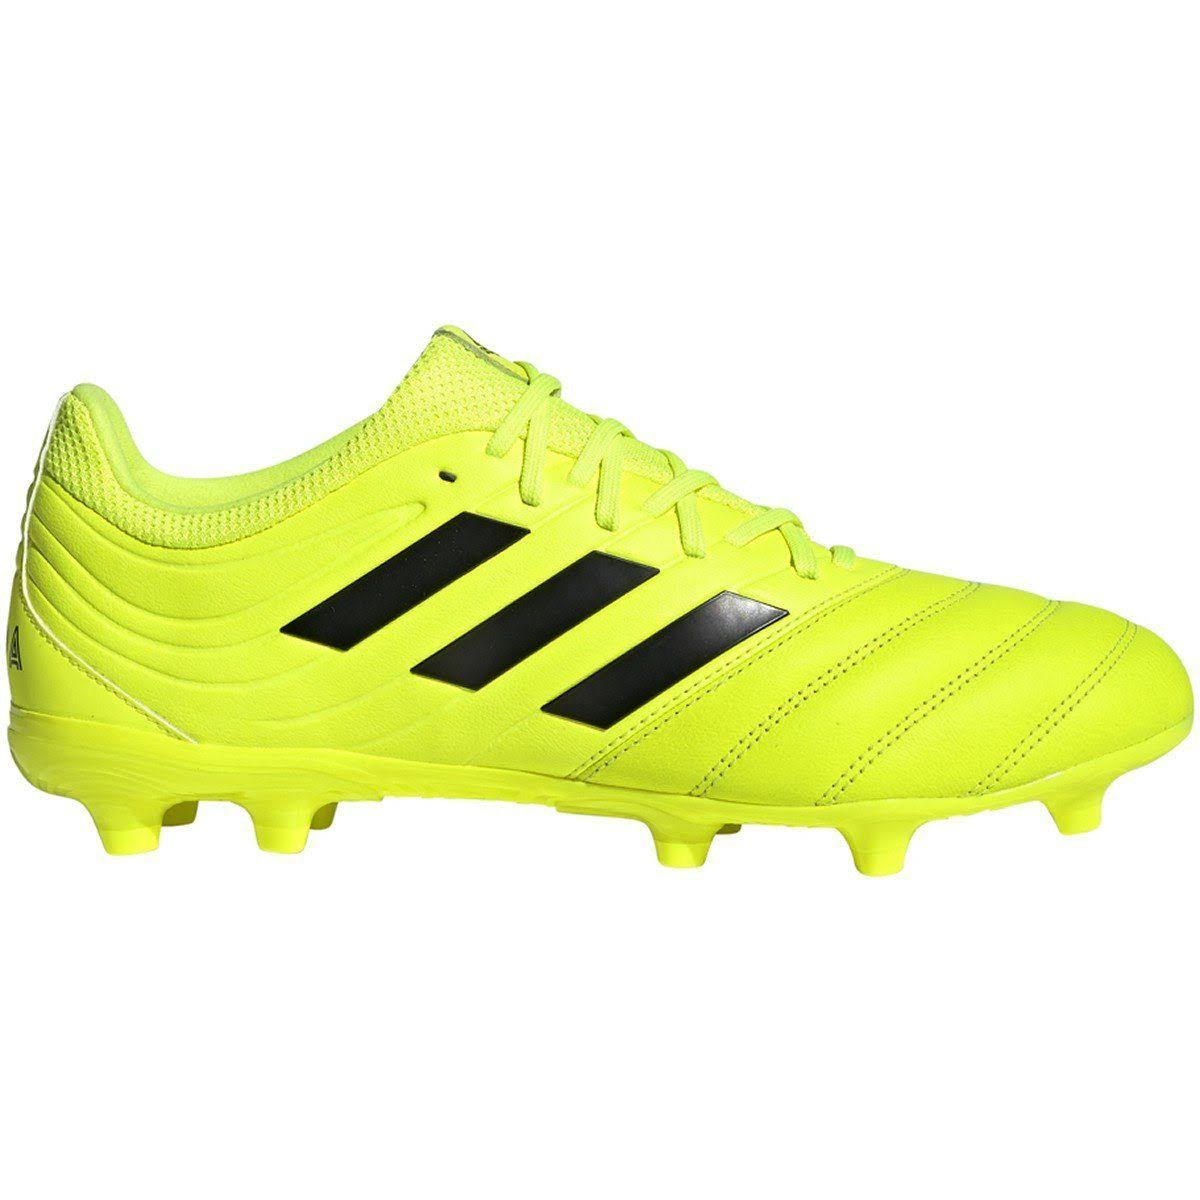 Adidas Copa 19.3 Firm Ground Cleats Men's, Size: 9.5, Yellow